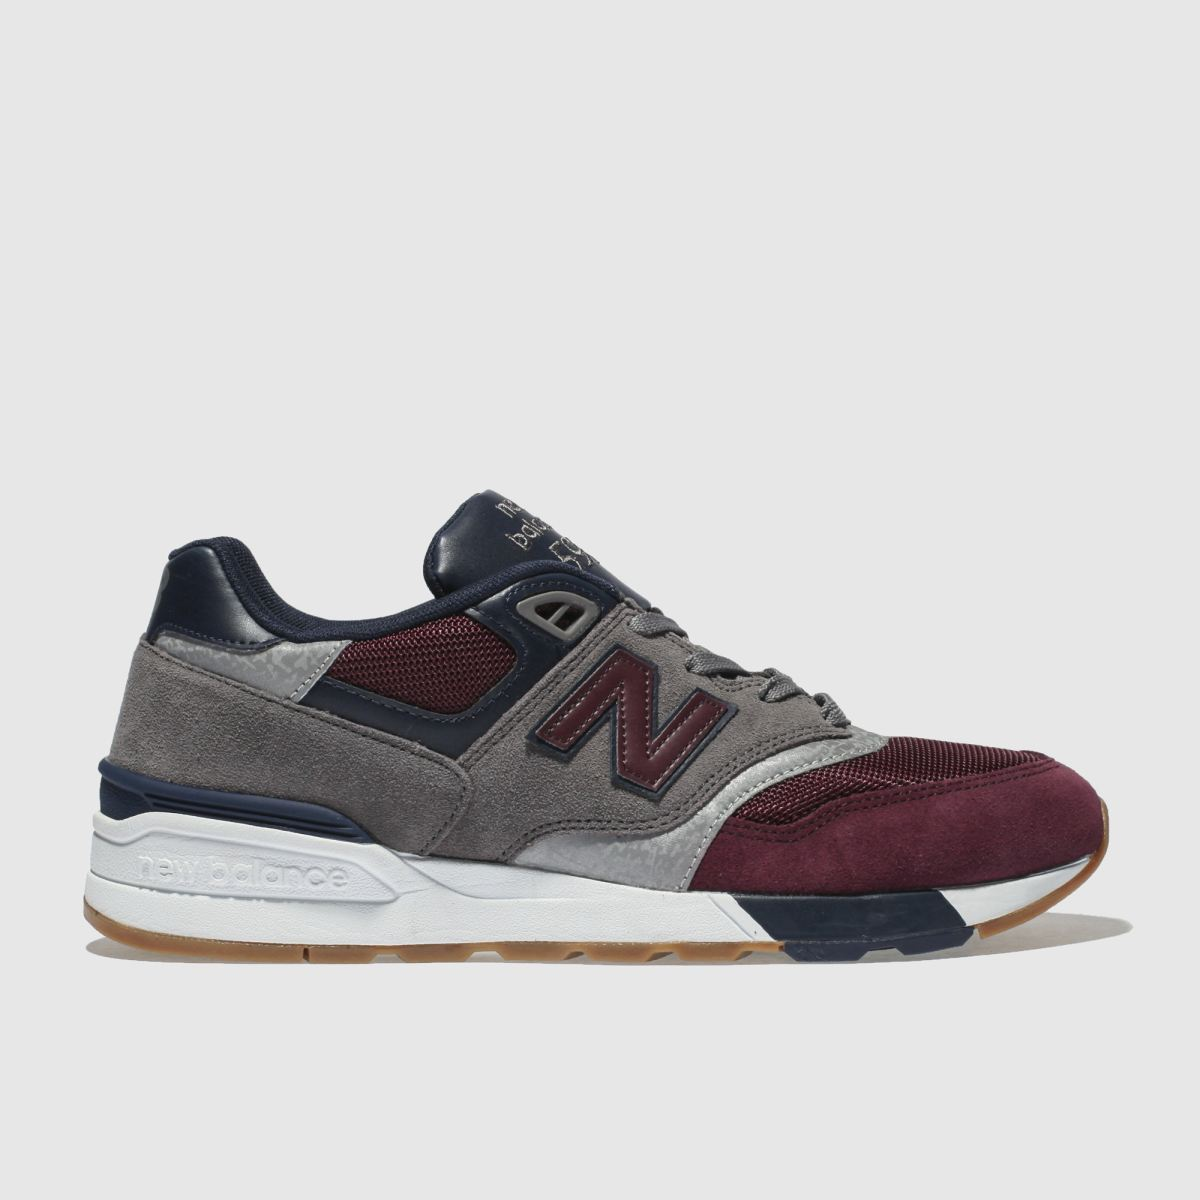 New Balance Burgundy 597 Trainers